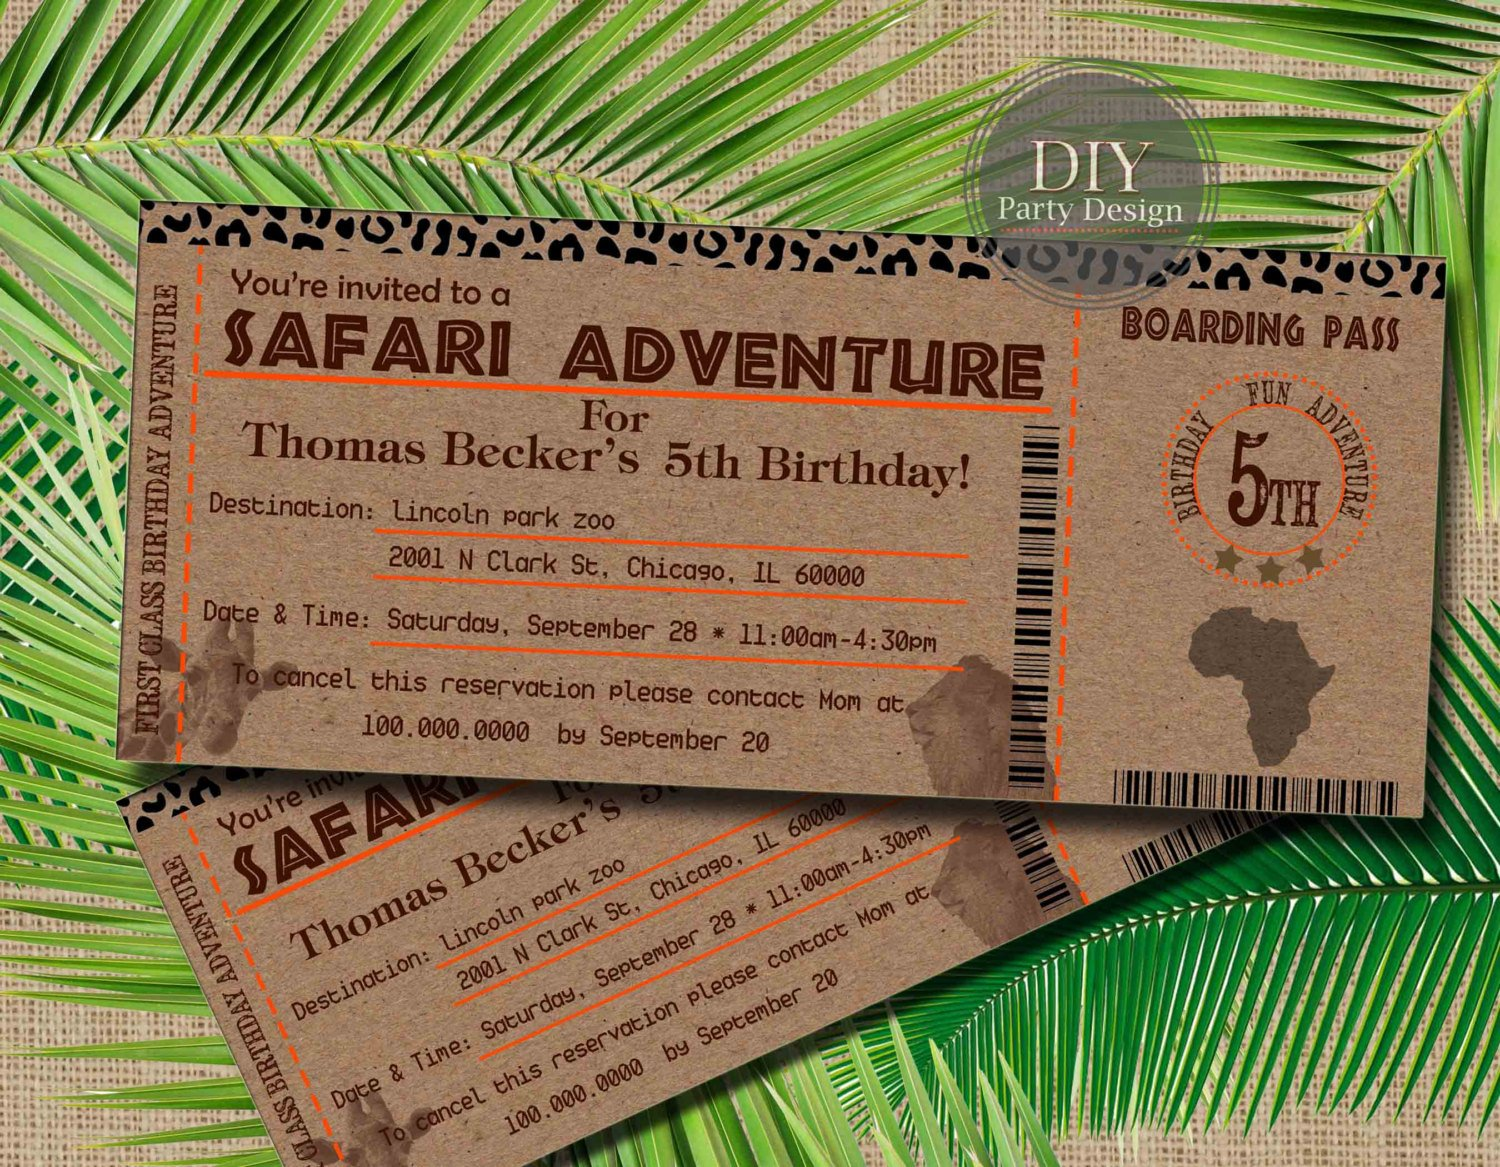 safari birthday boarding pass invitation ticket example